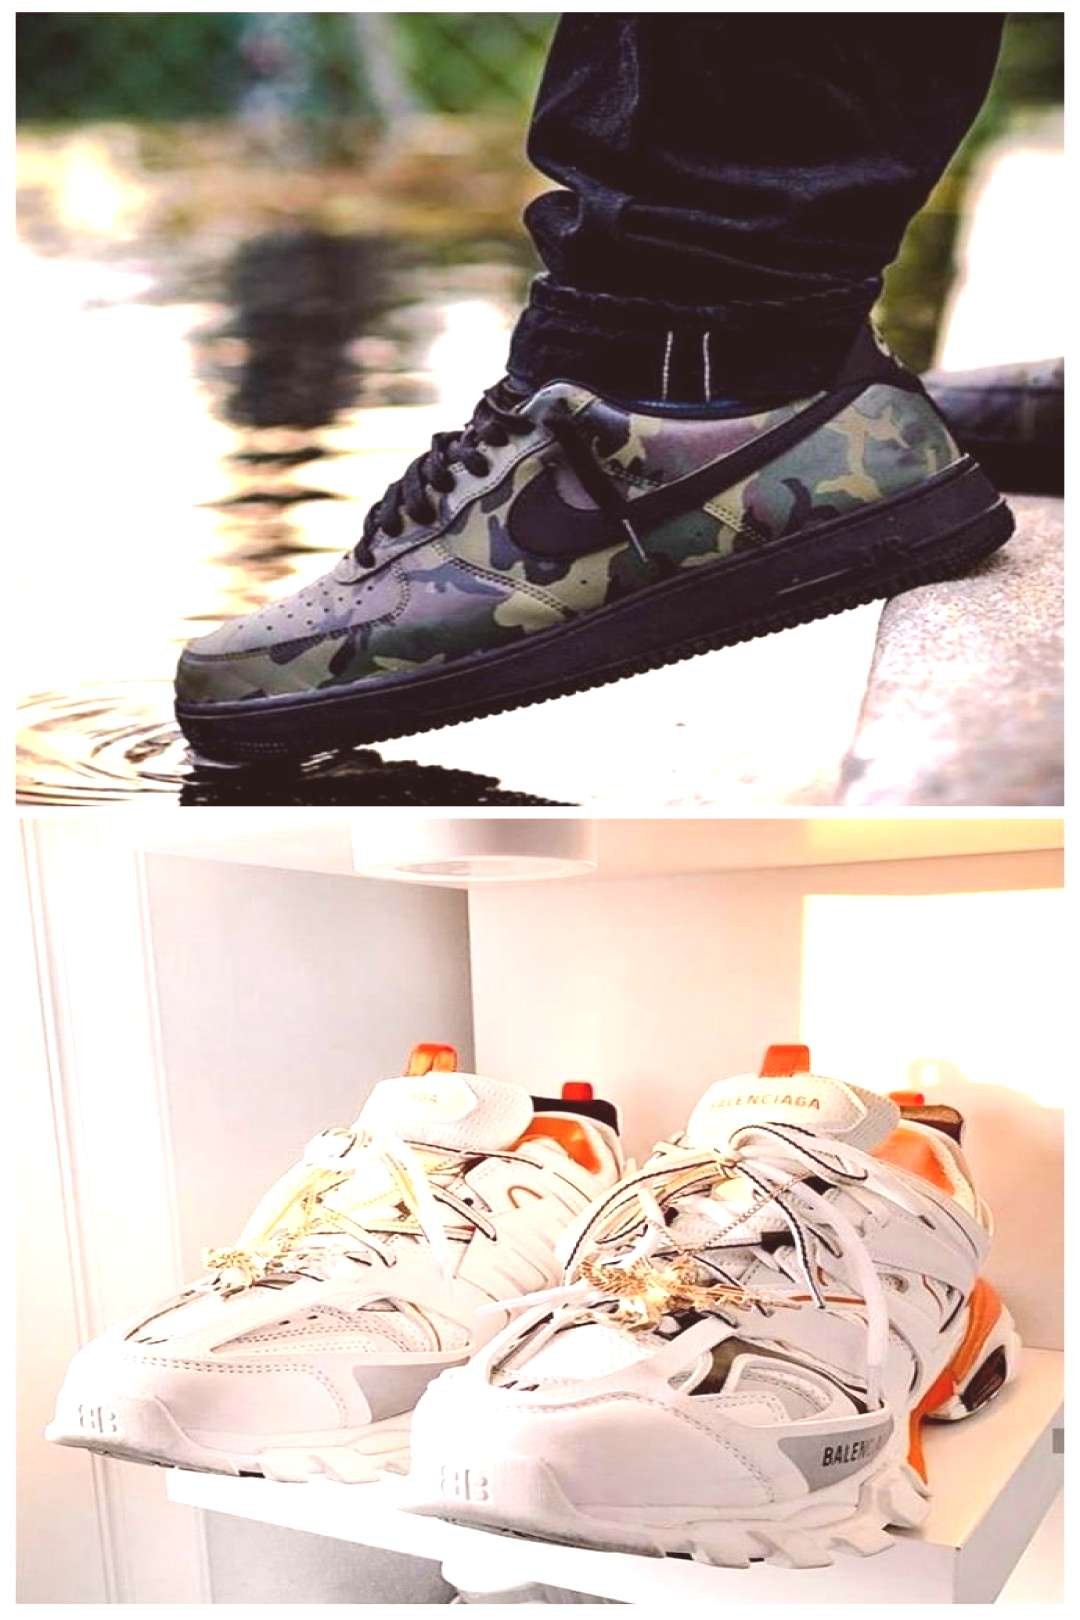 Nike Air Force 1 Low LV8 Reflective Camo Nike Air Force 1 Low LV8 Reflective Camo,